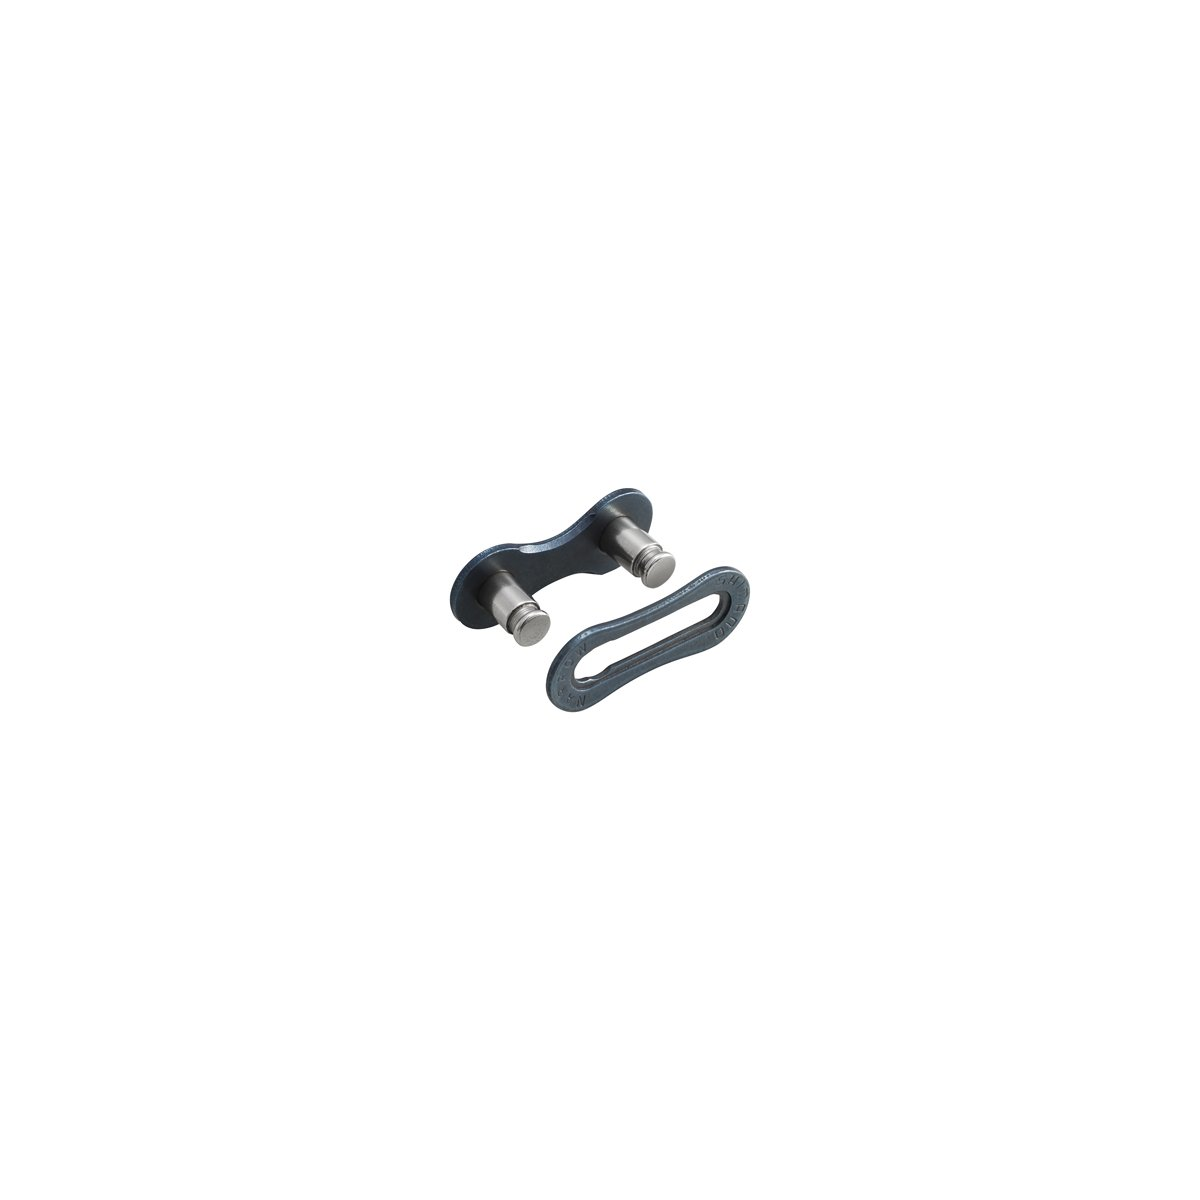 Shimano Samleled 6/7/8 Speed 2 stk. - 39,00 | Chains connector